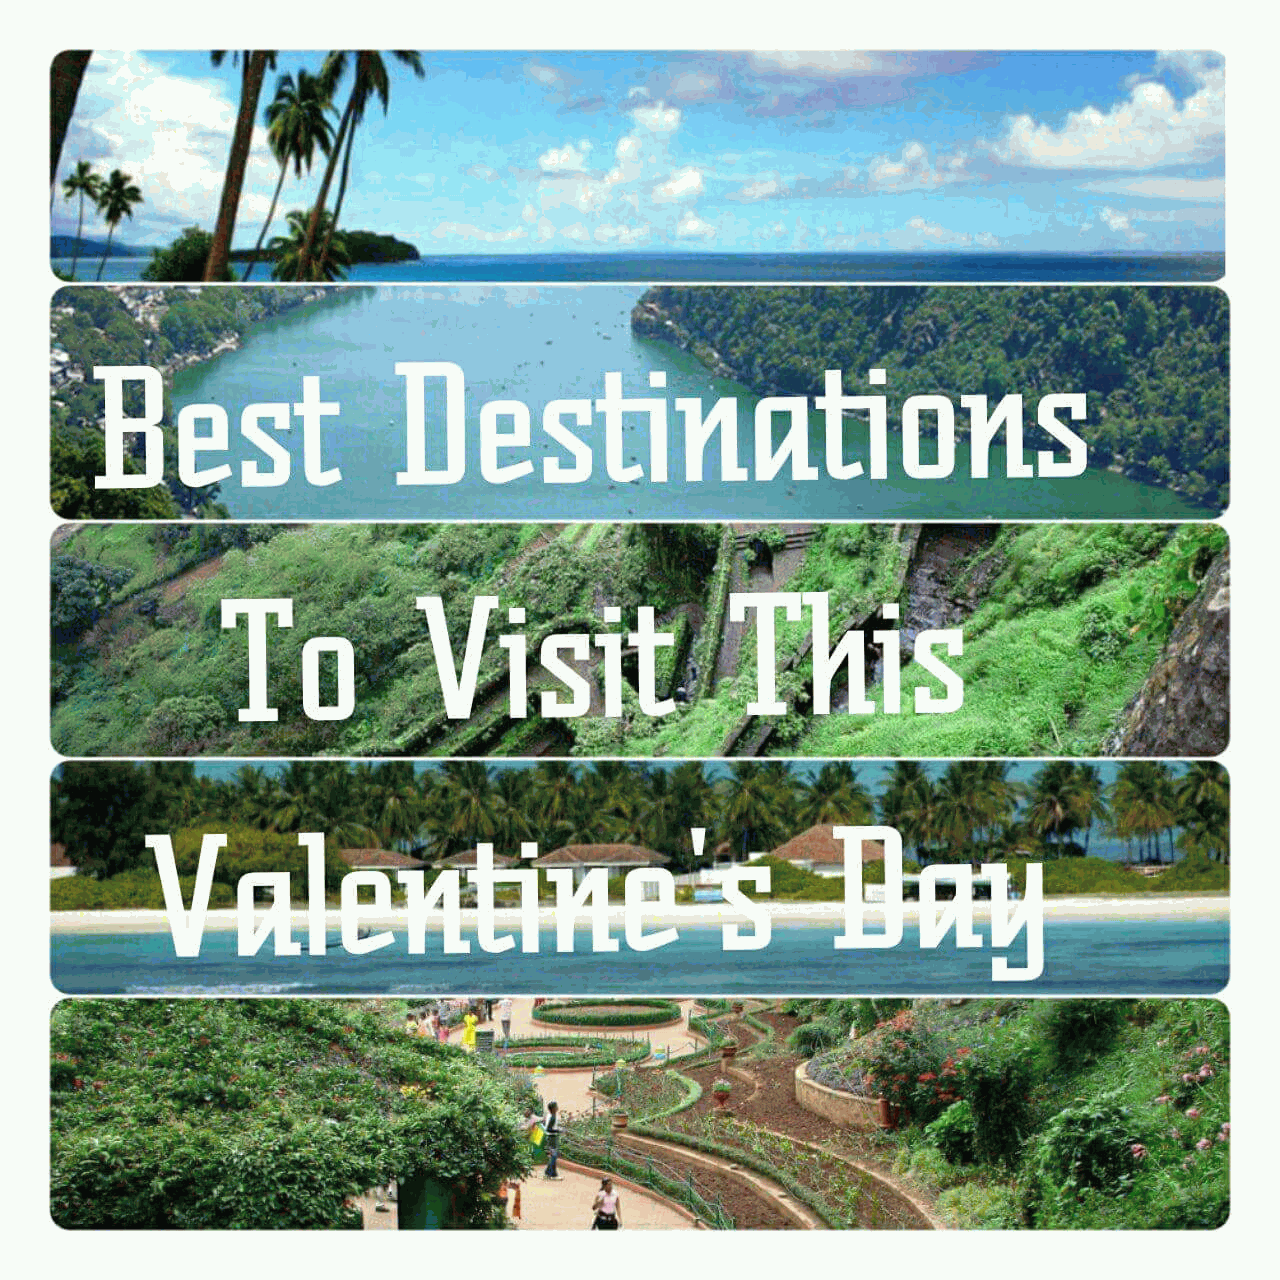 Best-Destinations-To-Visit-This-Valentines-Day